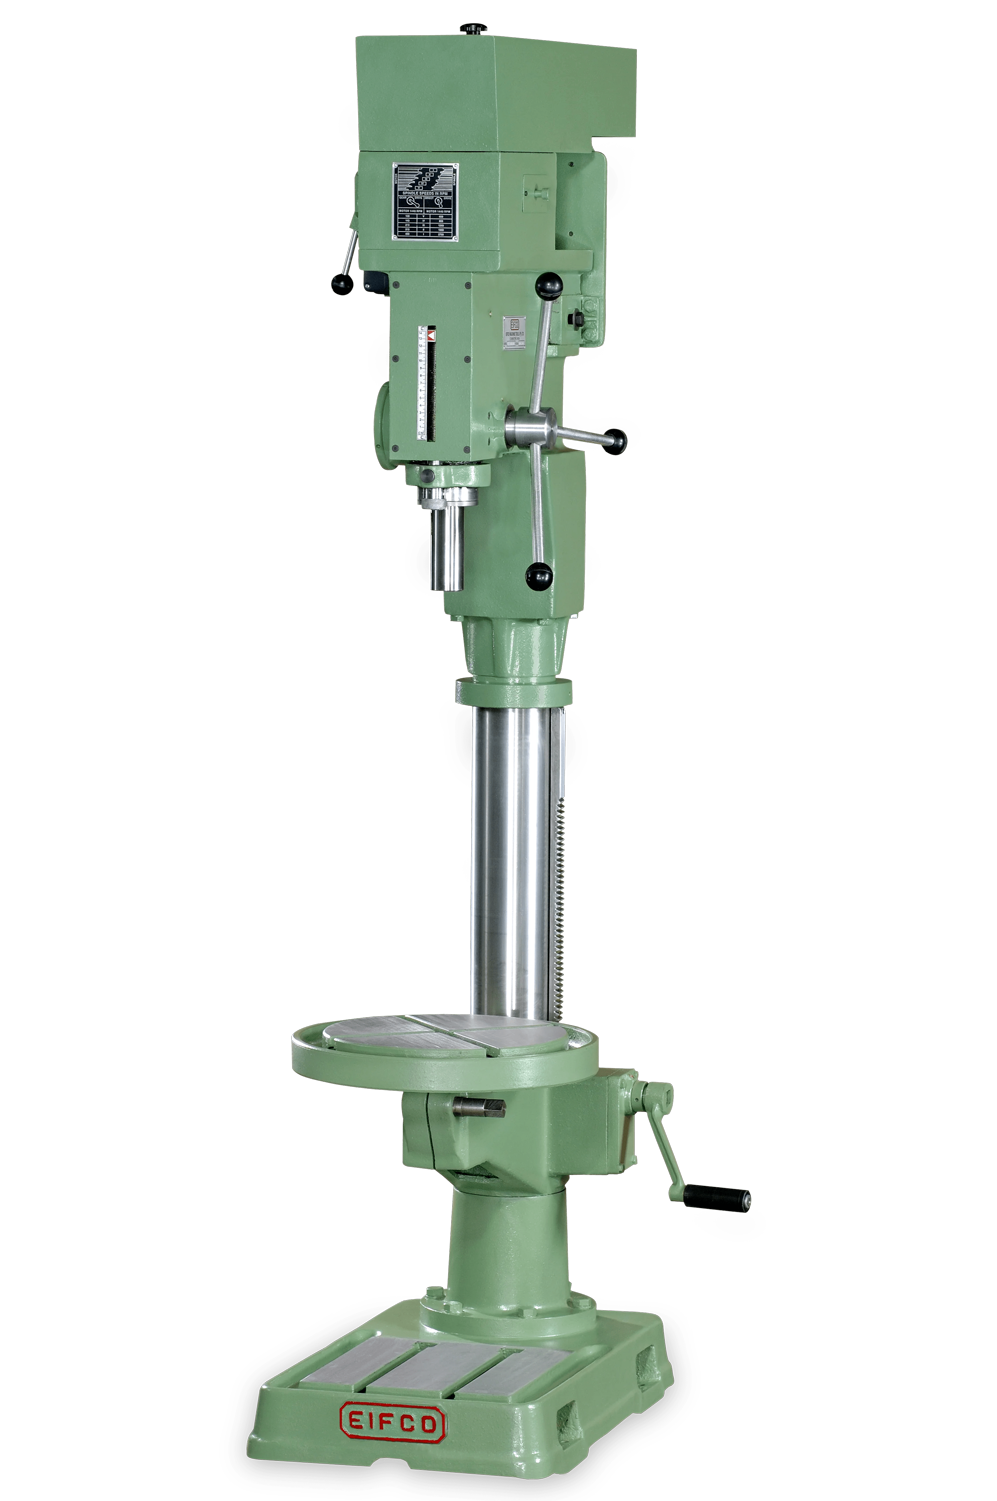 Eifco -Pillar Drilling Machine (Heavy Duty) - Manual Feed